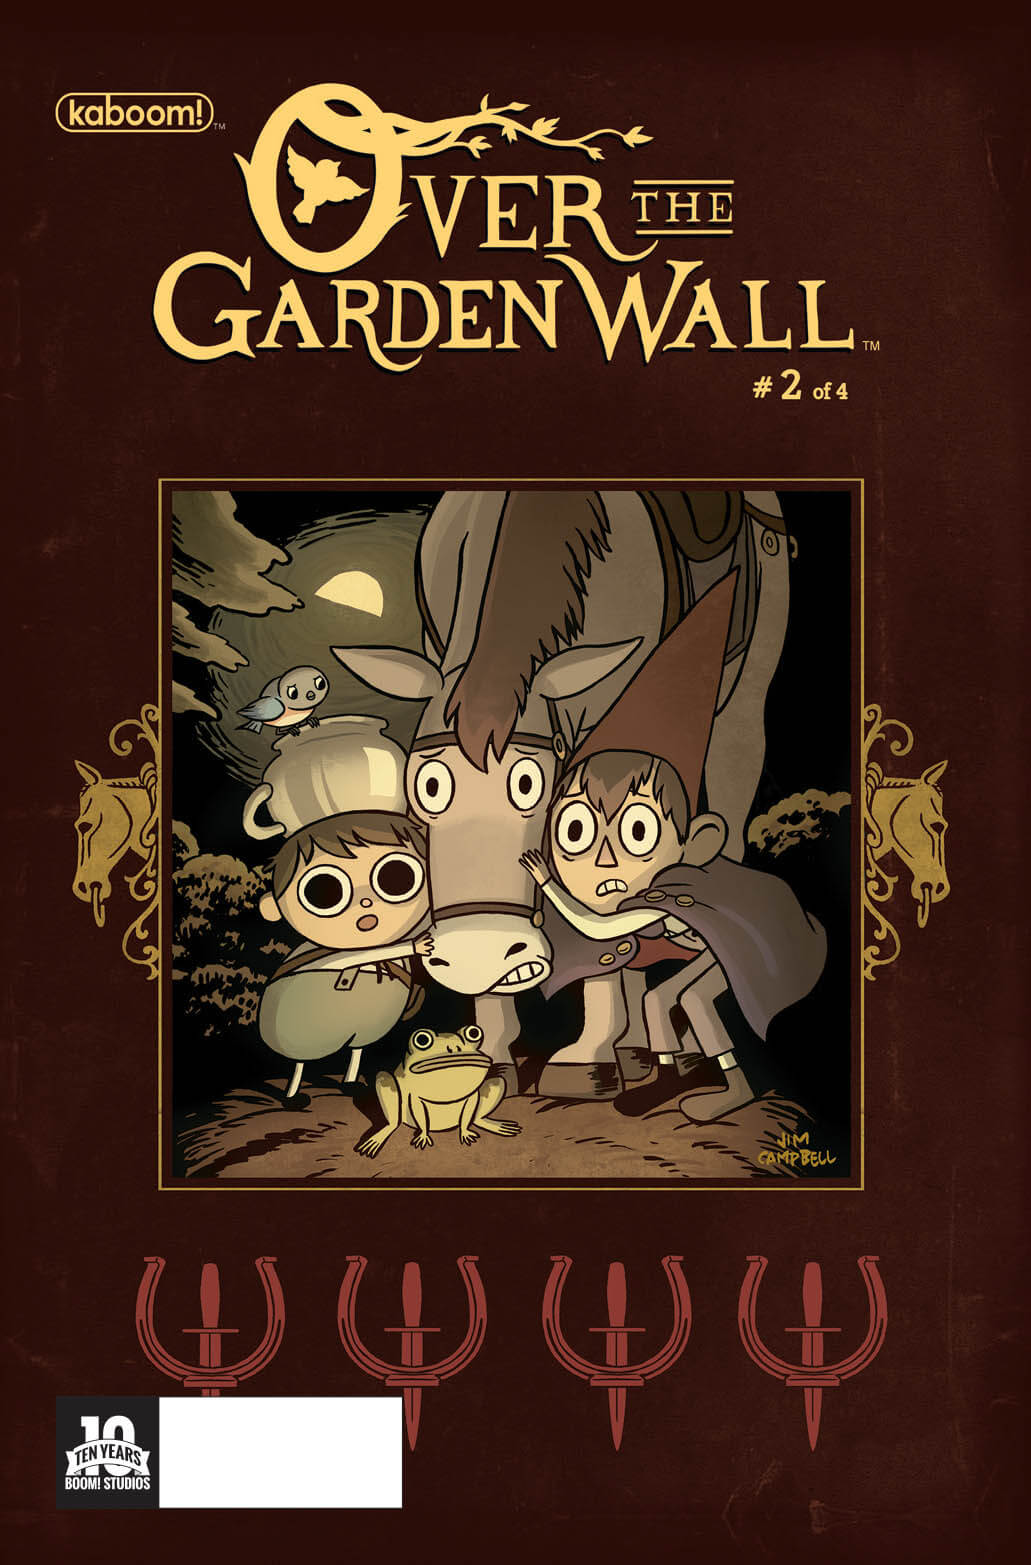 Preview: Over the Garden Wall #2 (of 4) - All-Comic.com